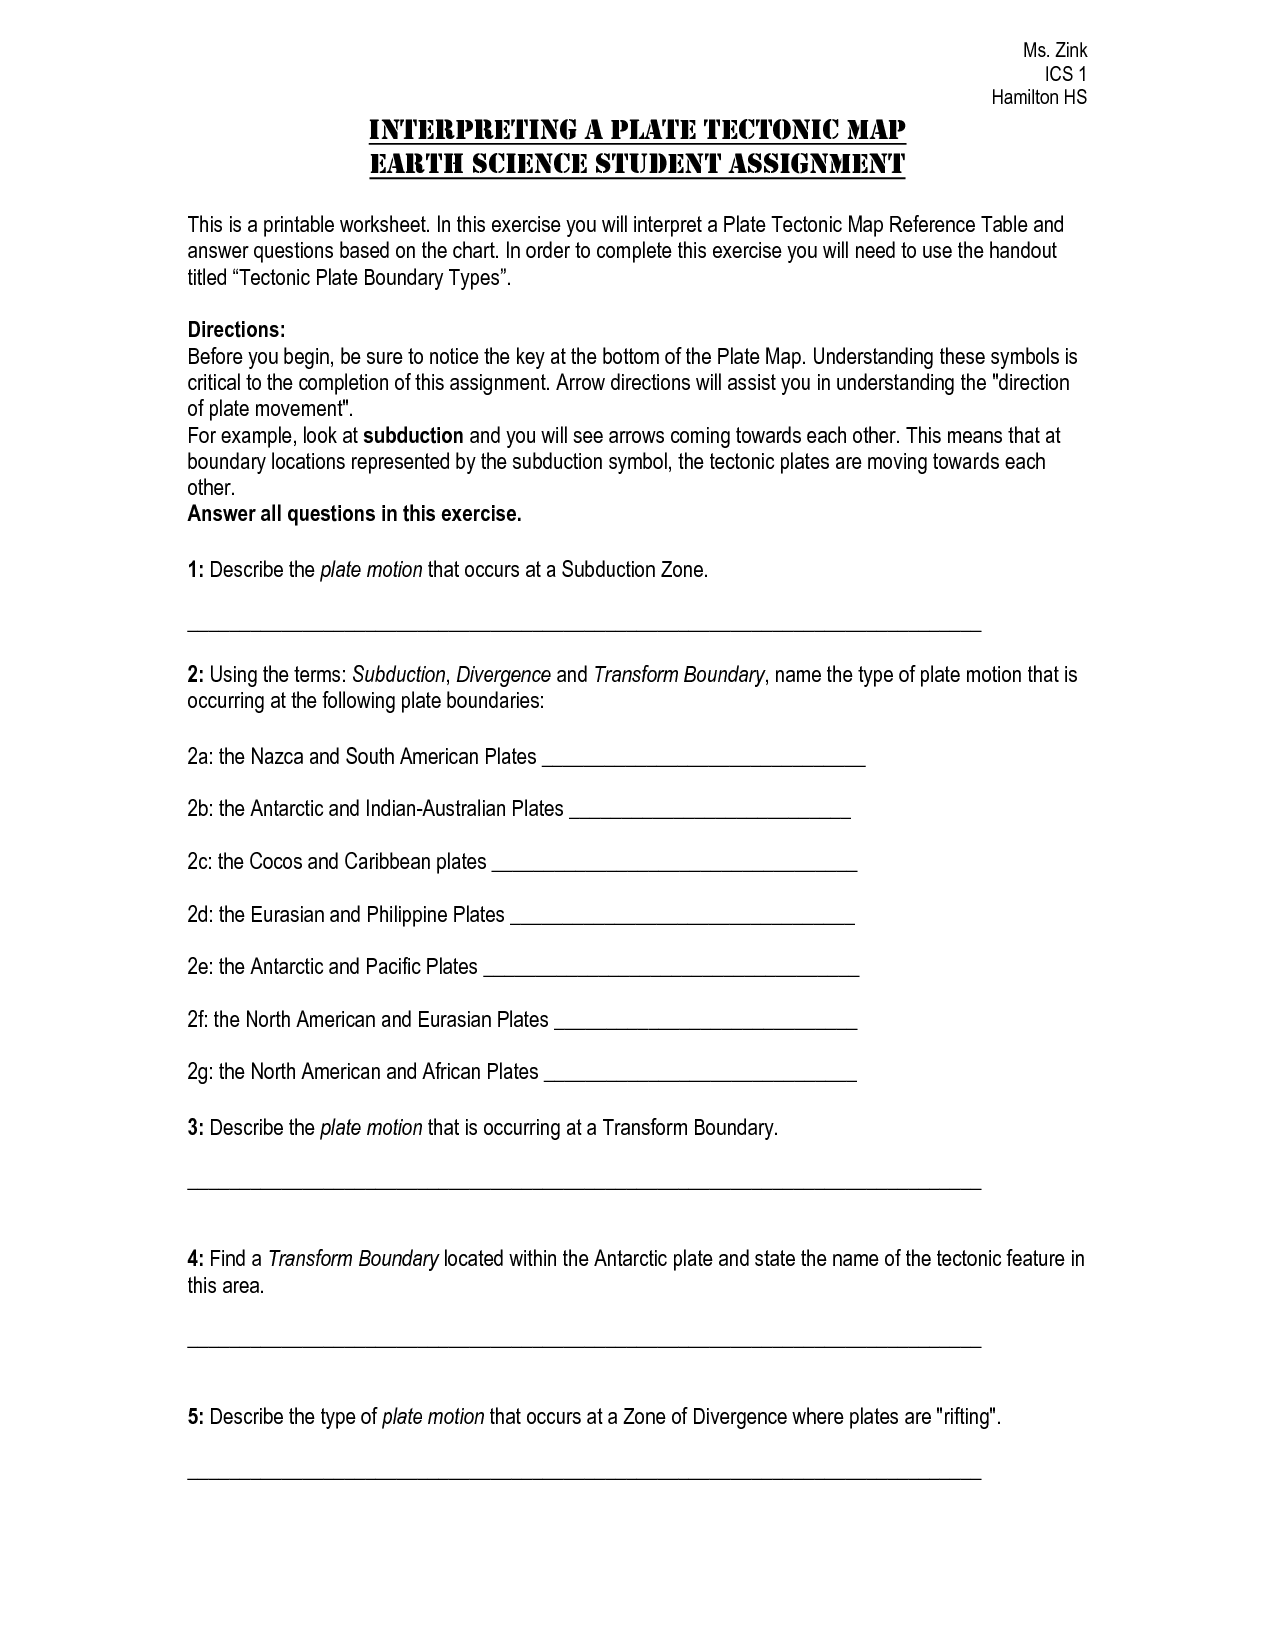 13 Best Images Of Plate Tectonics Worksheet Answer Key